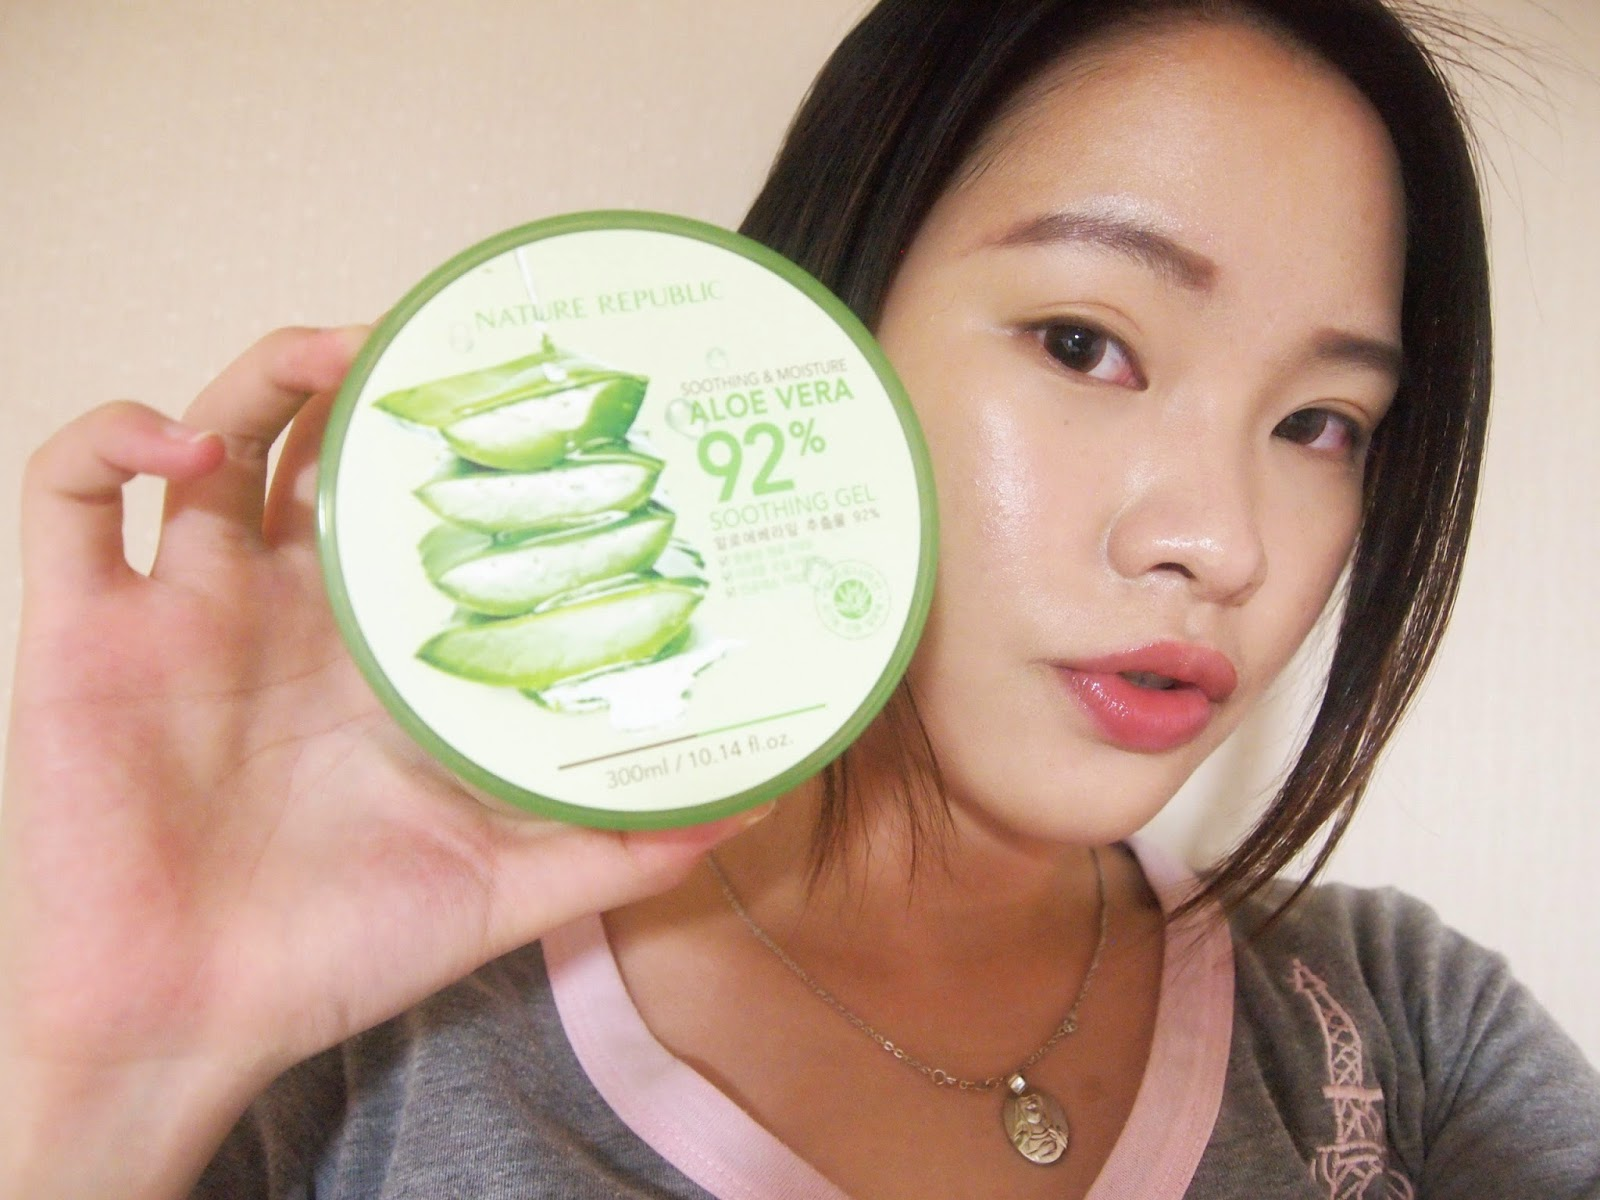 Nature republic soothing and moisture aloe vera 92 soothing gel 300ml - Natural Republic Alovera Soothing Gel Krw 4 400 300ml Hohoho So Let S Meet This Baby She Is One Of The Best Of The Best Of Nature Republic Products